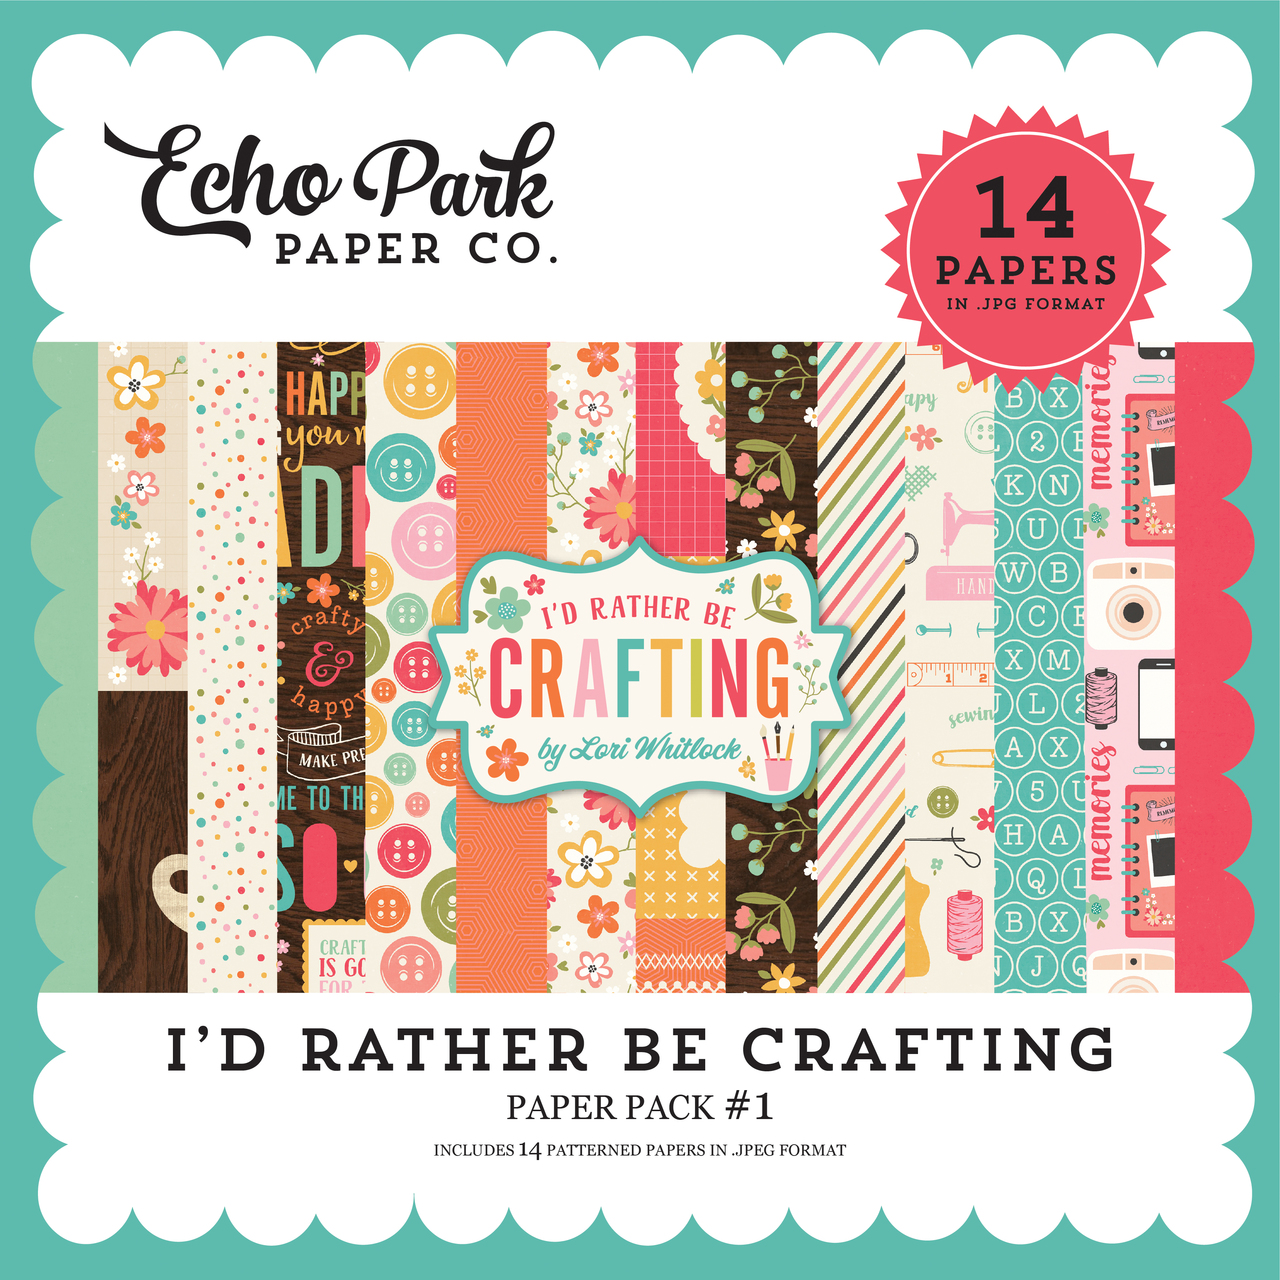 I'd Rather Be Crafting Paper Pack #1